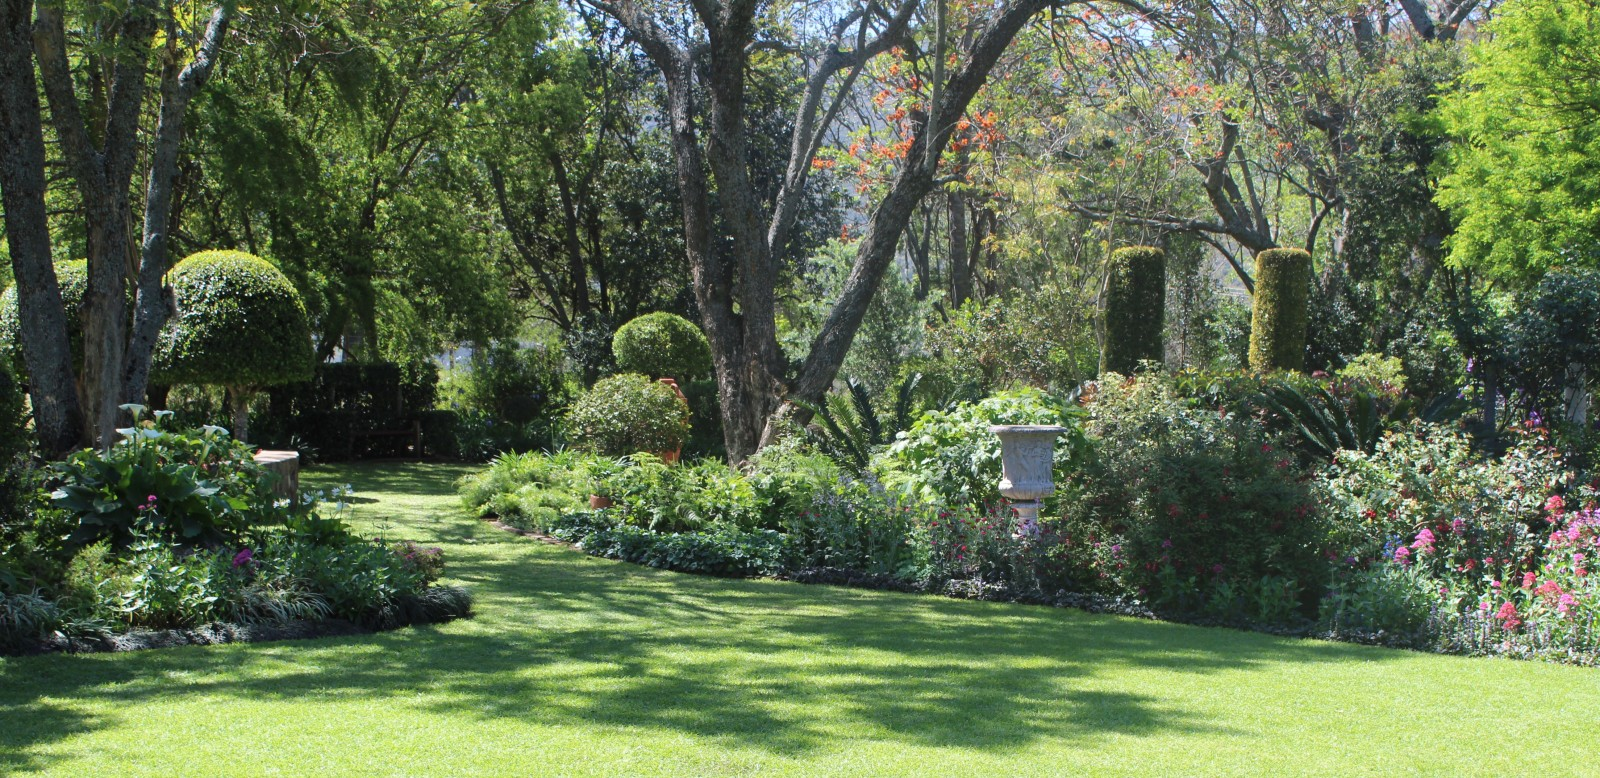 ... Happened In Previous Years, See Ivor Markmanu0027s Great Site  Http://ivormarkman.wix.com/bedford Garden Fest#!whats New/c1mg Orwrite To:  Info@bedford.co.za